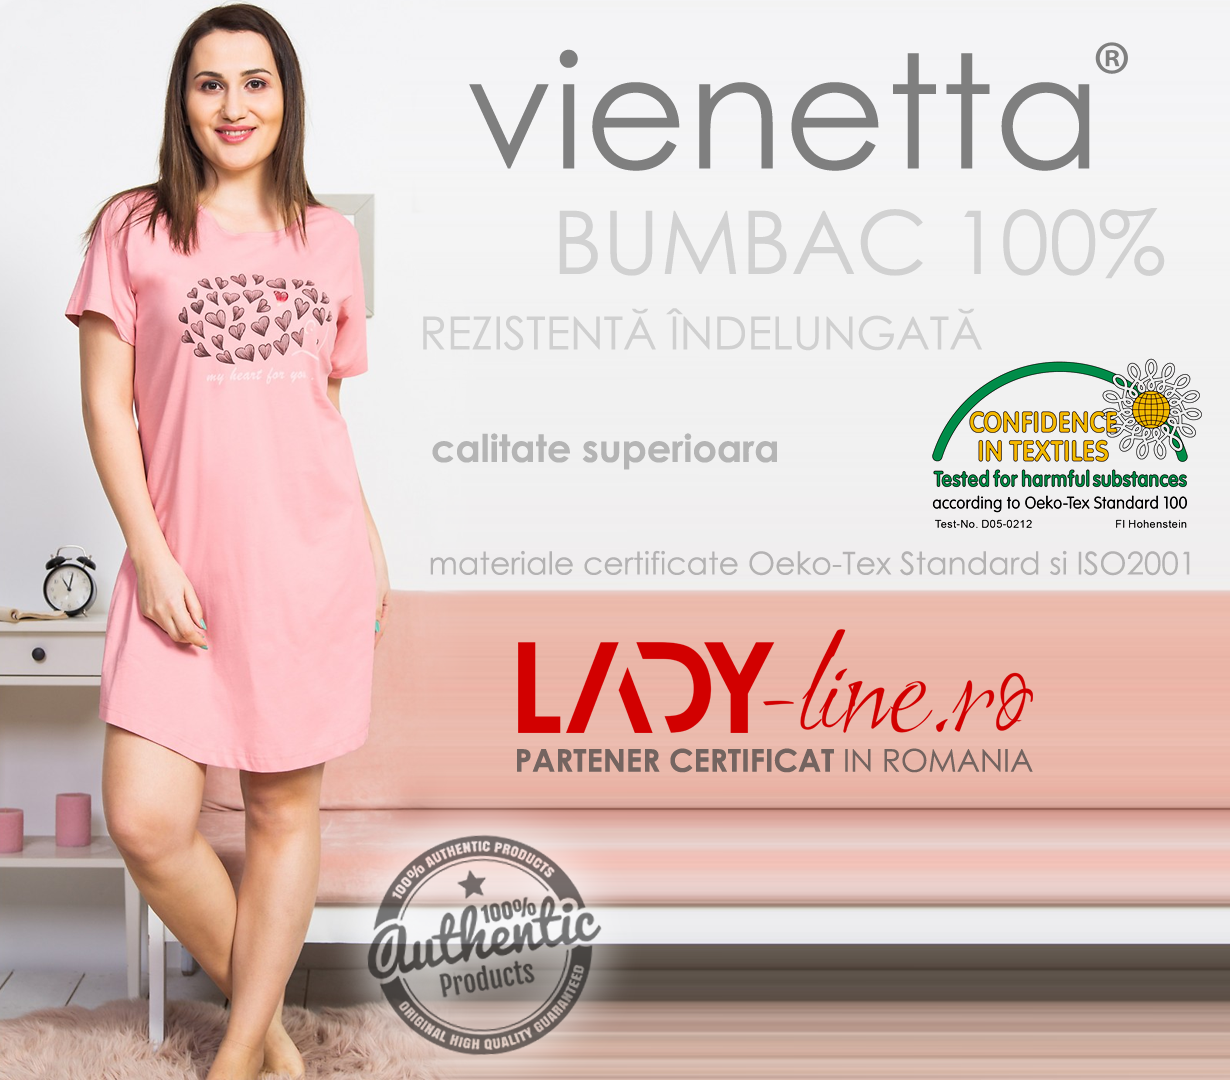 Camasa Dama Vienetta, Bumbac 100%, 'My Heart for You' Pink